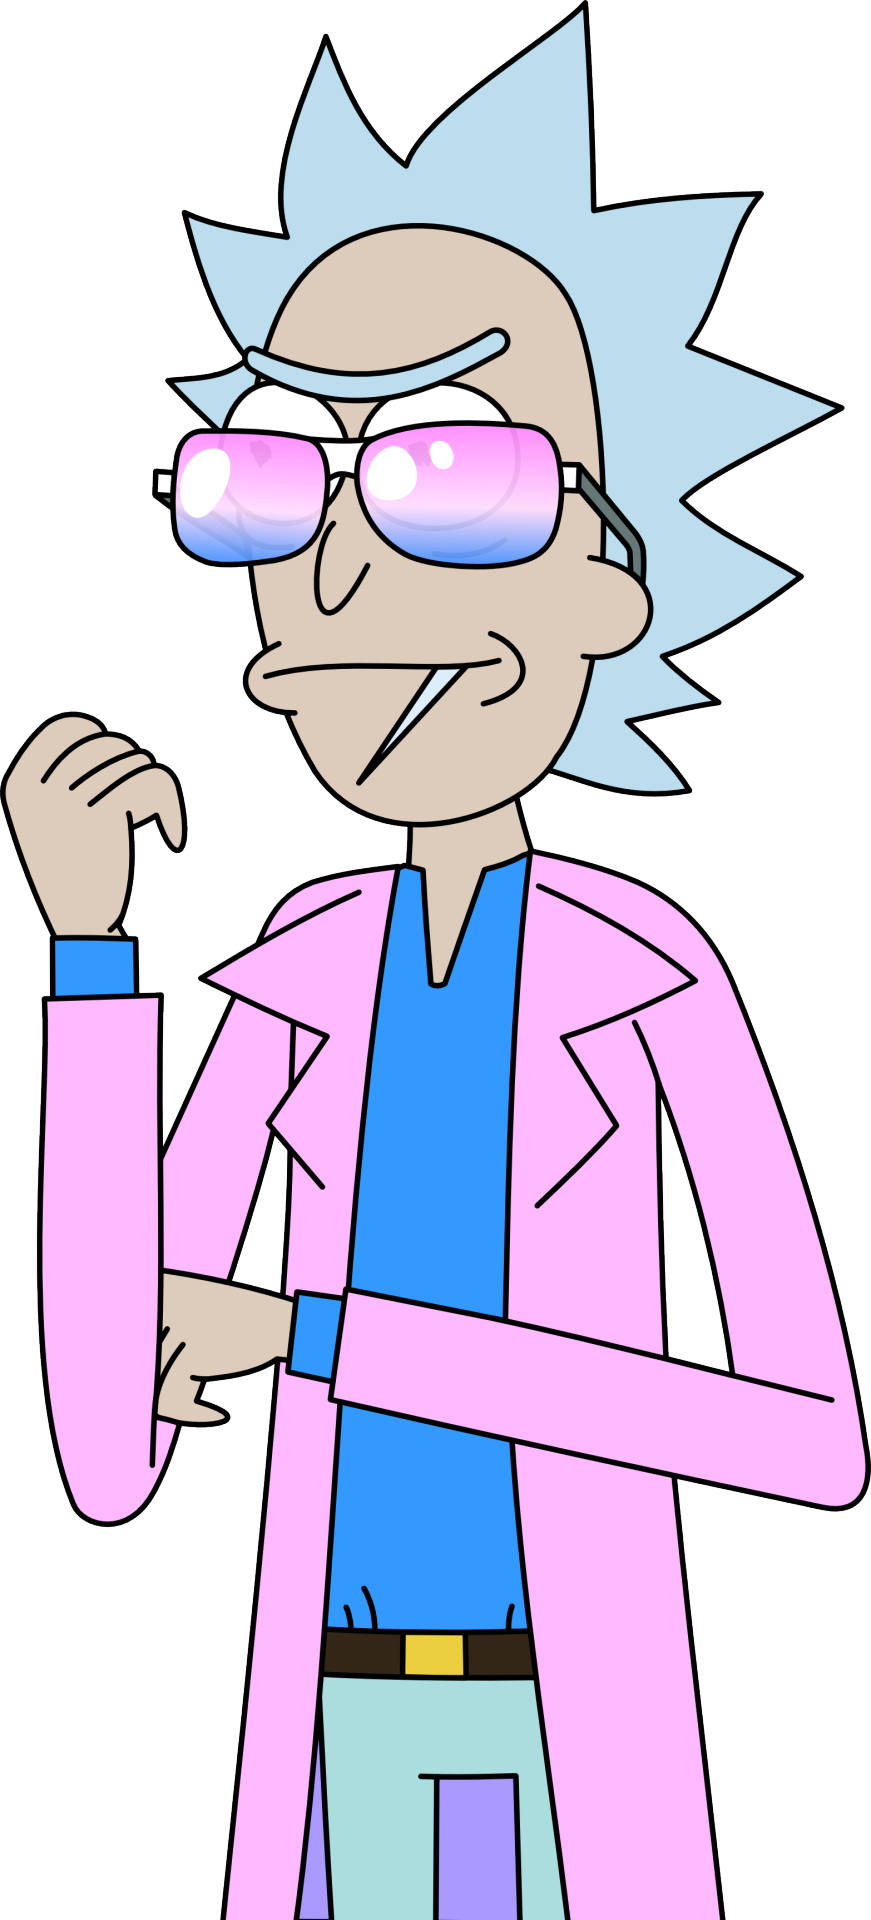 Rick and morty png tumblr. Miami transparent vector by